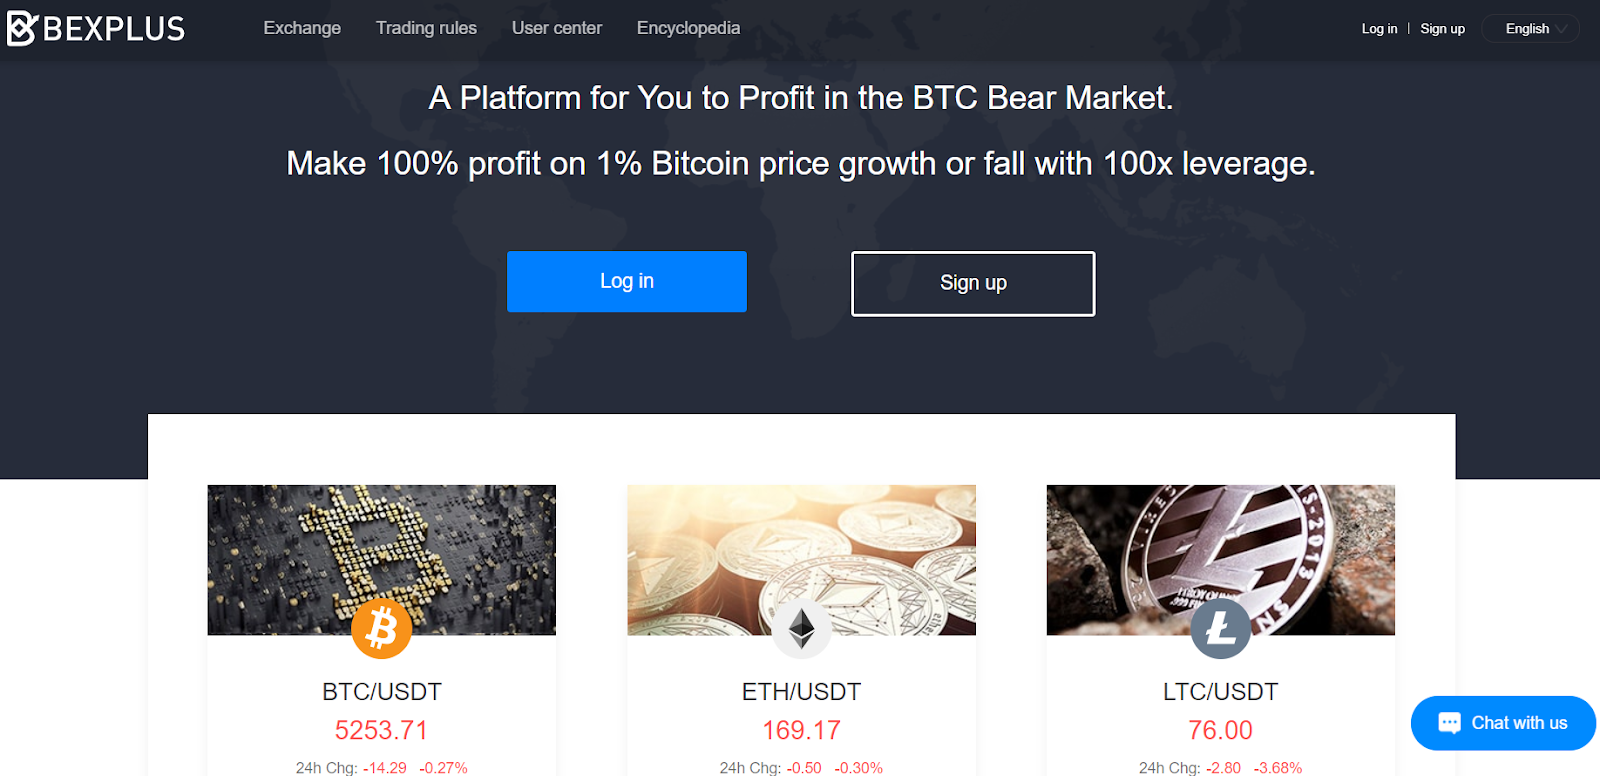 Bexplus Exchange Gives You 10 BTC to Try 100x Leverage BTC Margin Trading